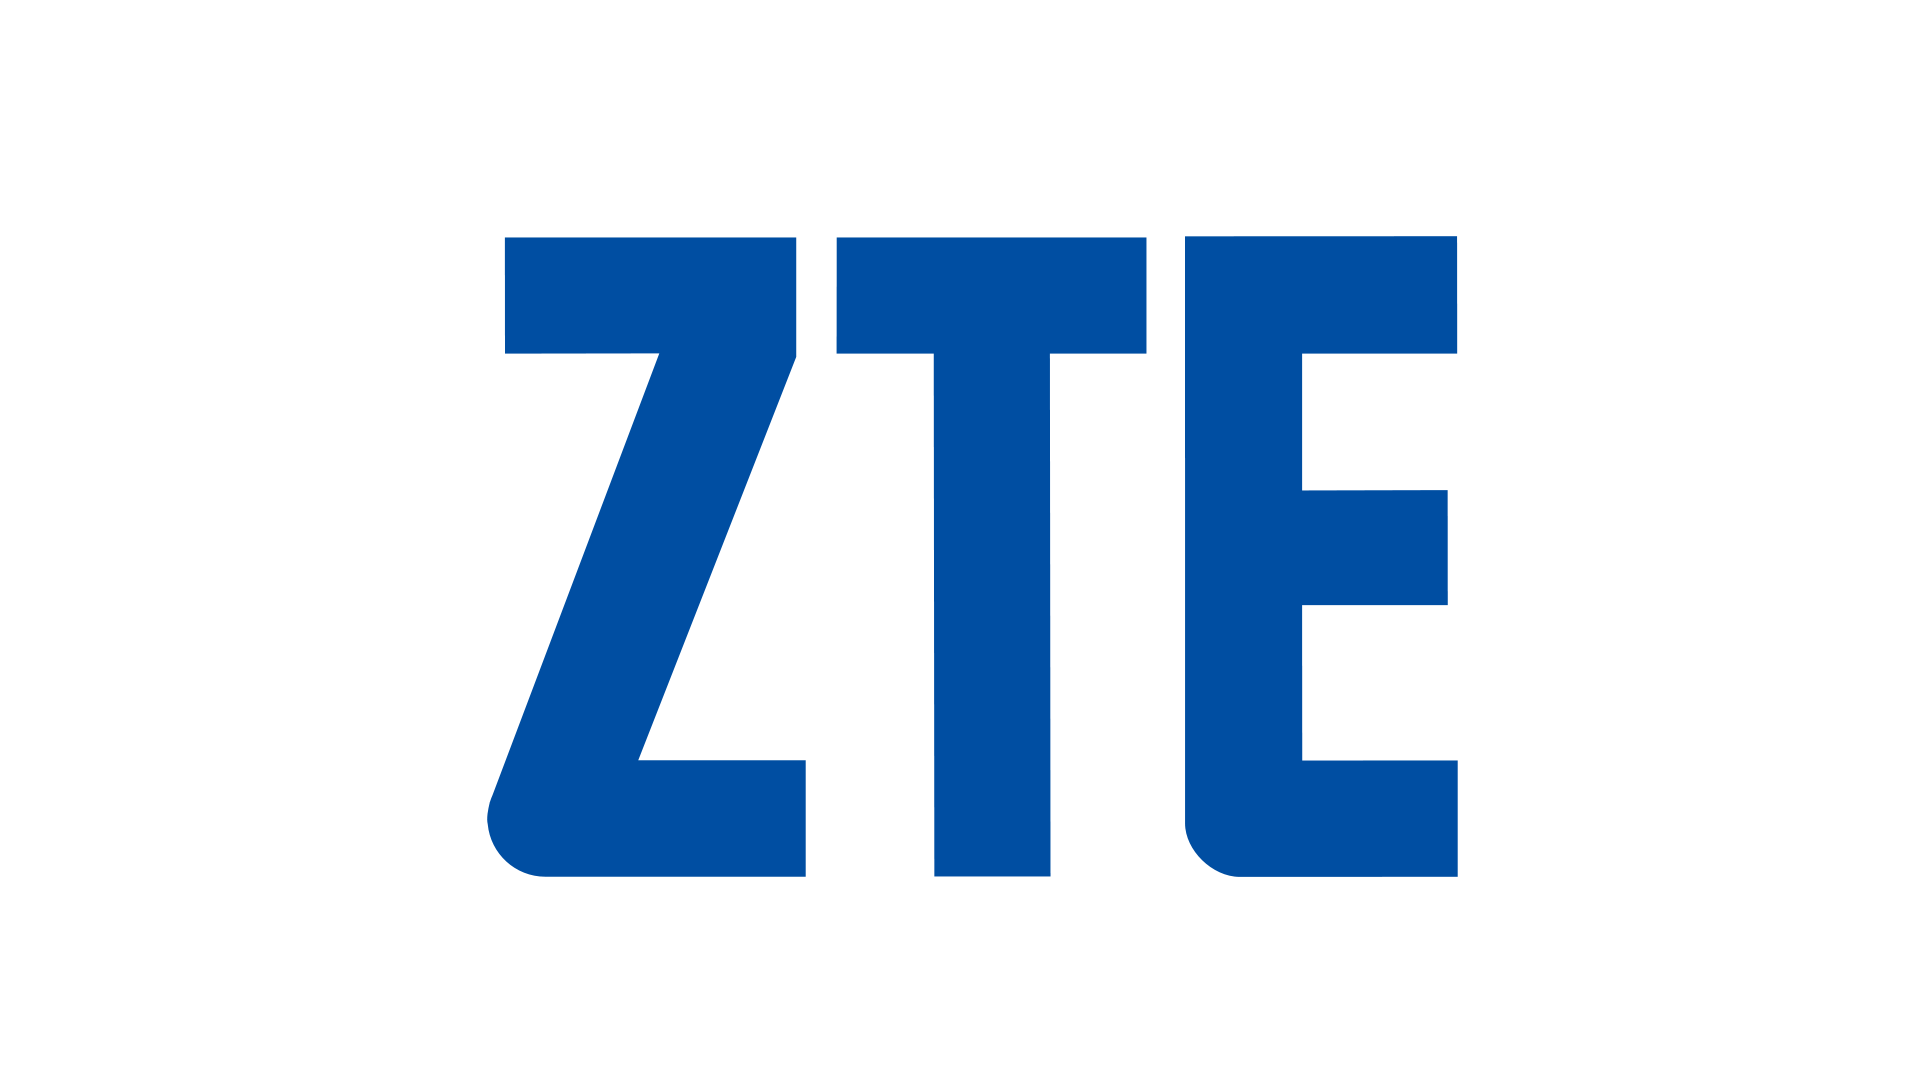 Zte Logo Png ZTE Corporation...